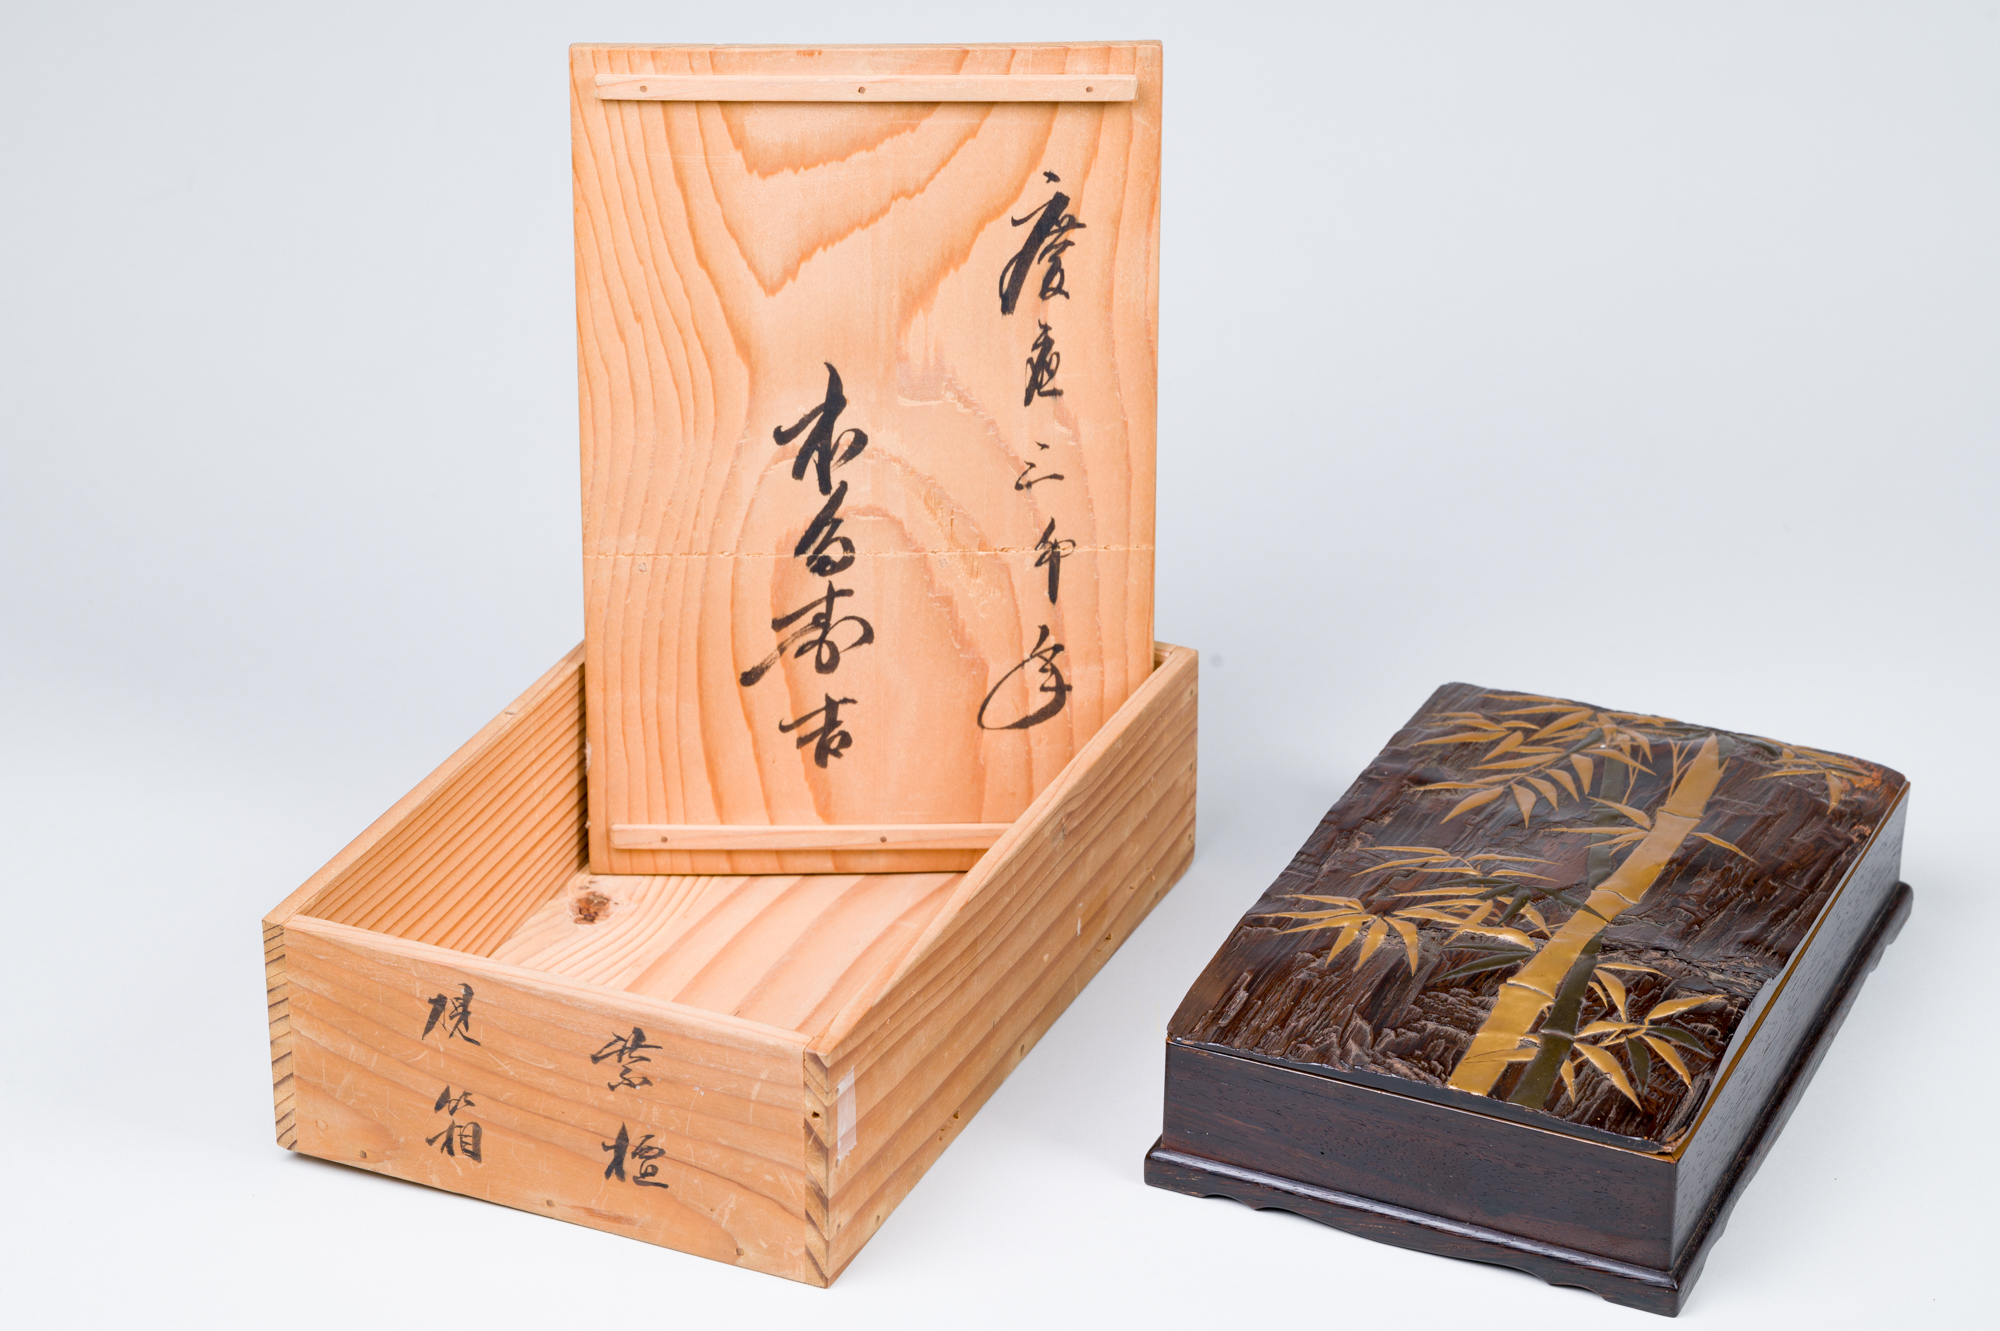 zatan, zatan wood, Japanese lacquer, Japanese antique, antique lacquer, Japanese antique lacquer, lacquer box, Japanese box, suzuribako, writing box, Japanese writing box